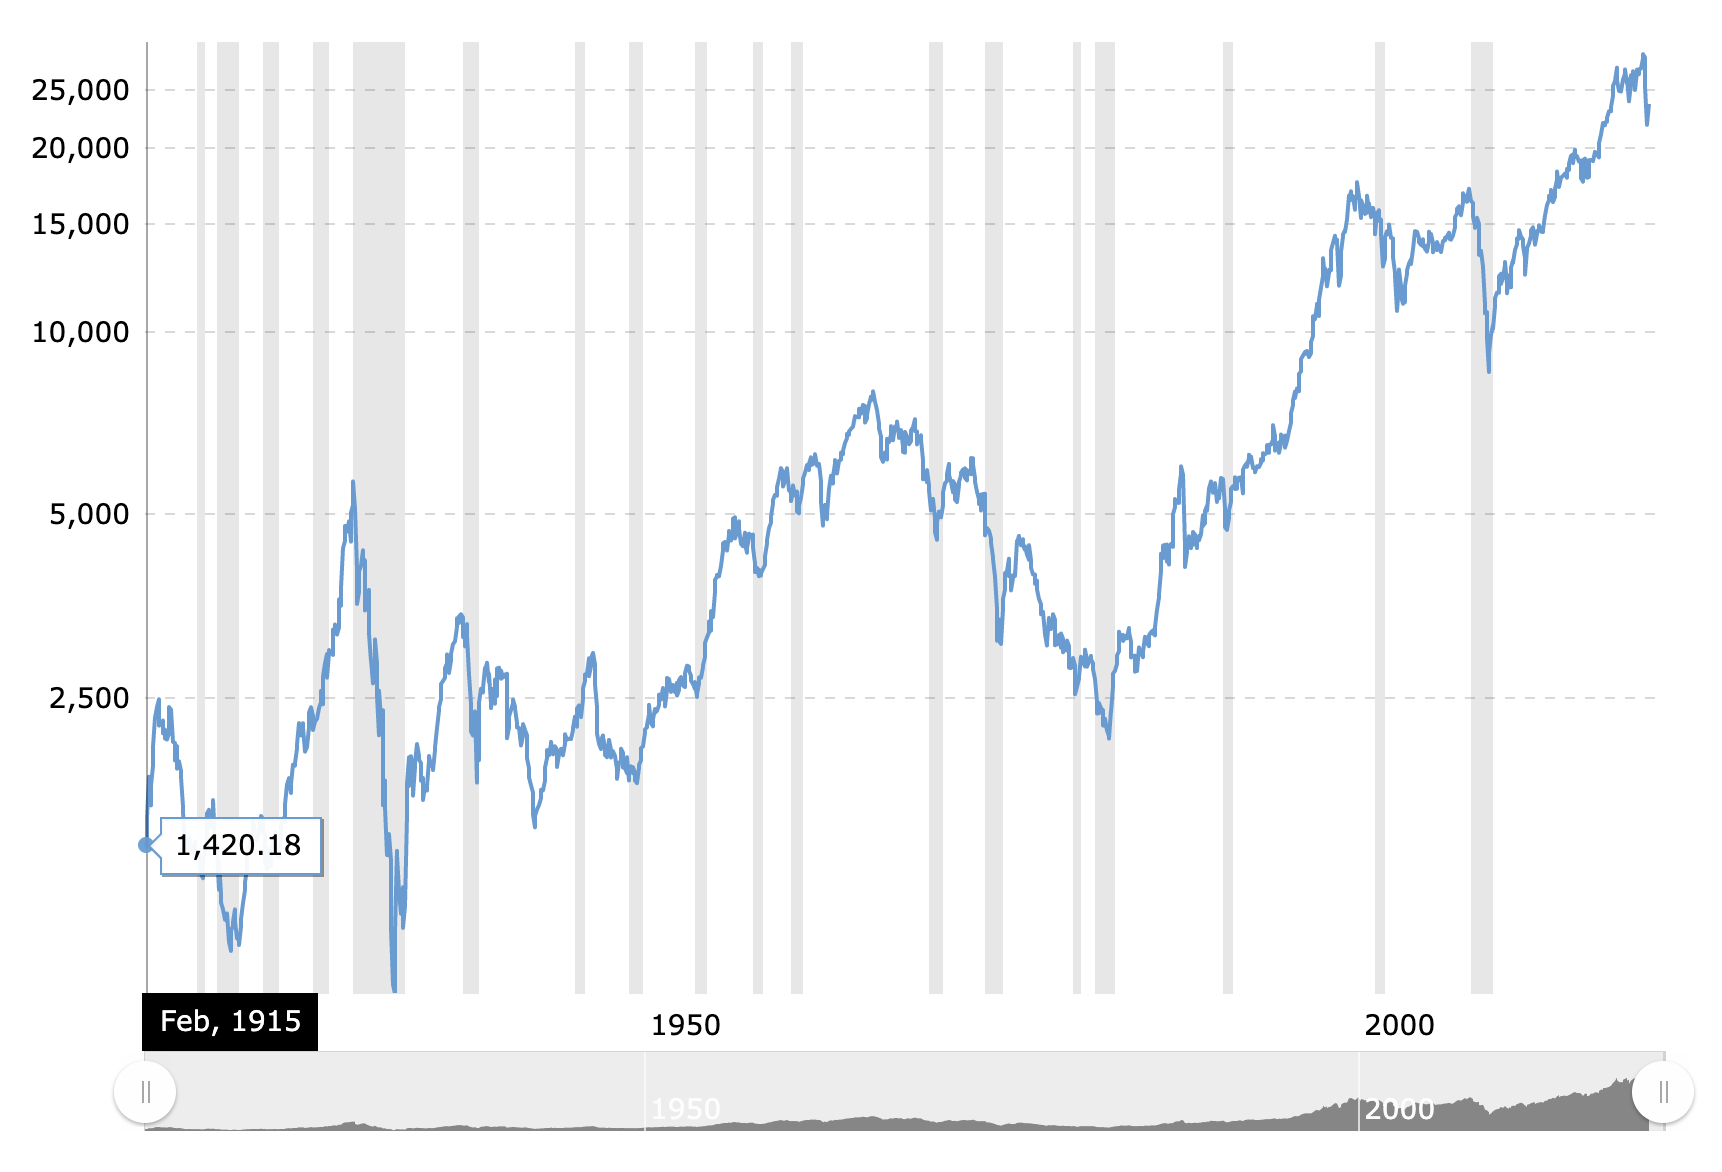 stock market index for the last 100 years.